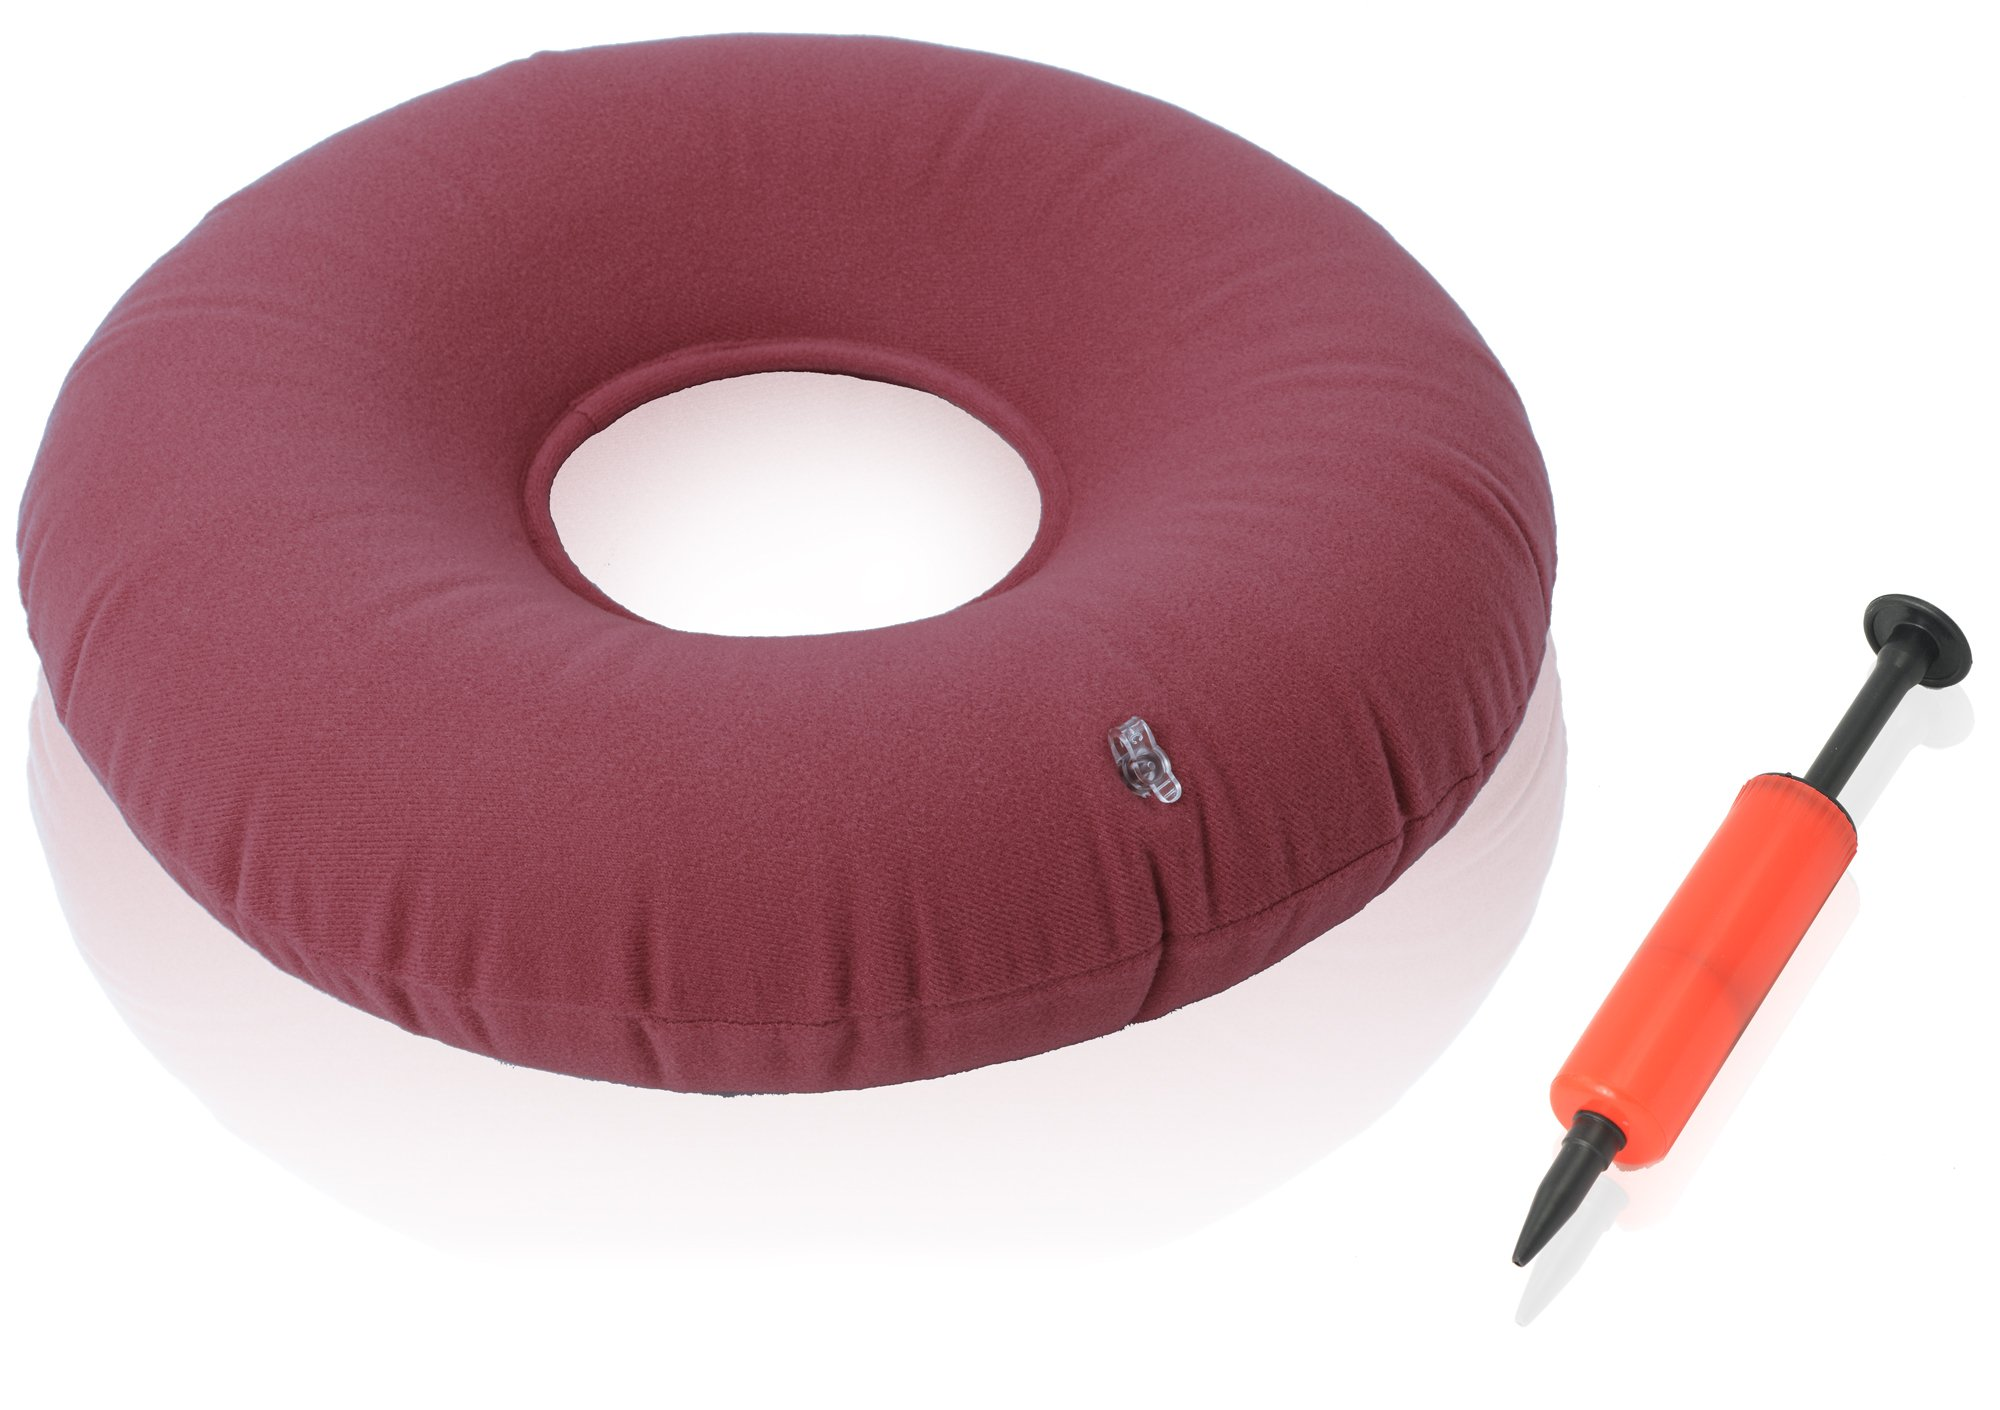 Dr. Frederick's Original Donut Cushion - 15'' Inflatable Donut Pillow for Tailbone Pain Relief - Hemorrhoid Treatment - Bed Sores - Prostatitis - Red